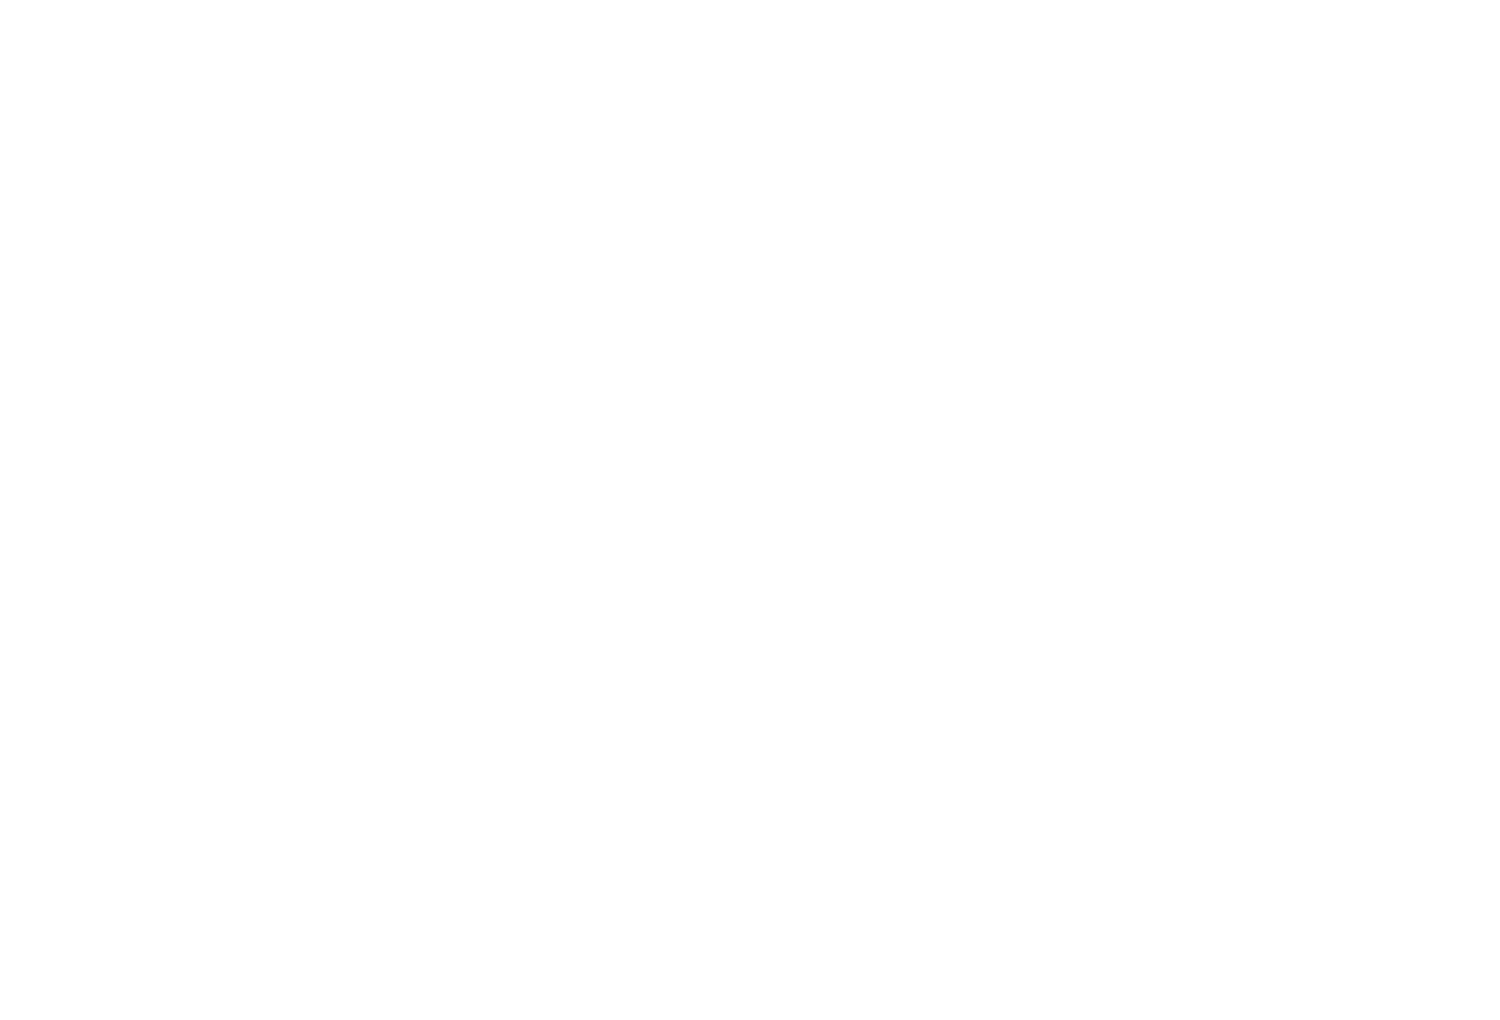 Raising A Village Foundation